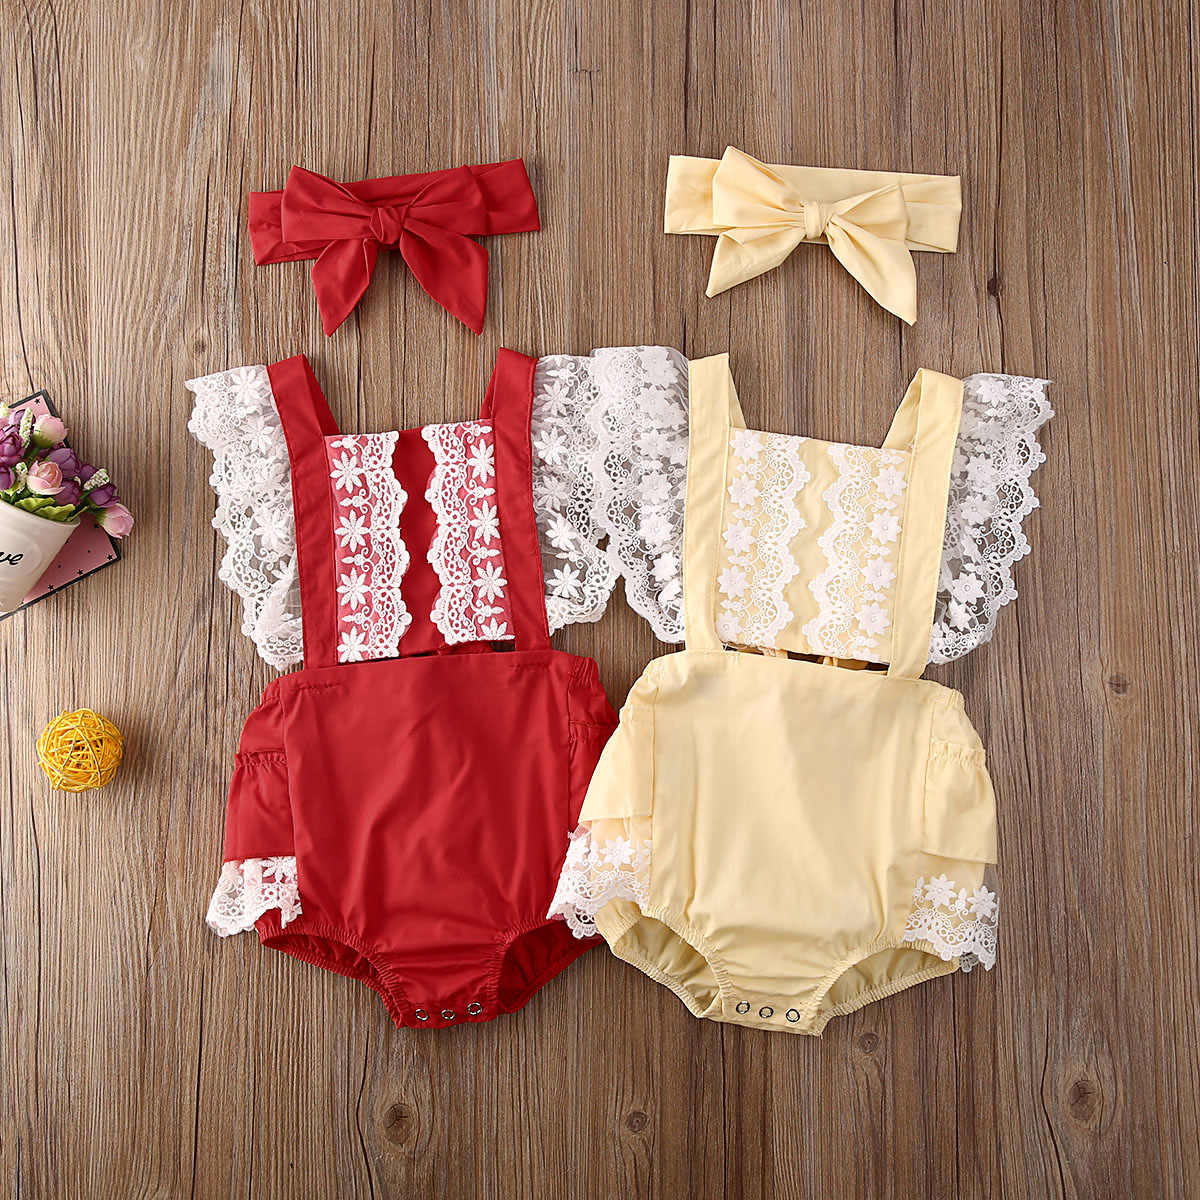 Summer Newborn Infant Baby Girl Clothes Lace Jumpsuit Bodysuit+Headband Outfit Casual Sunsuit